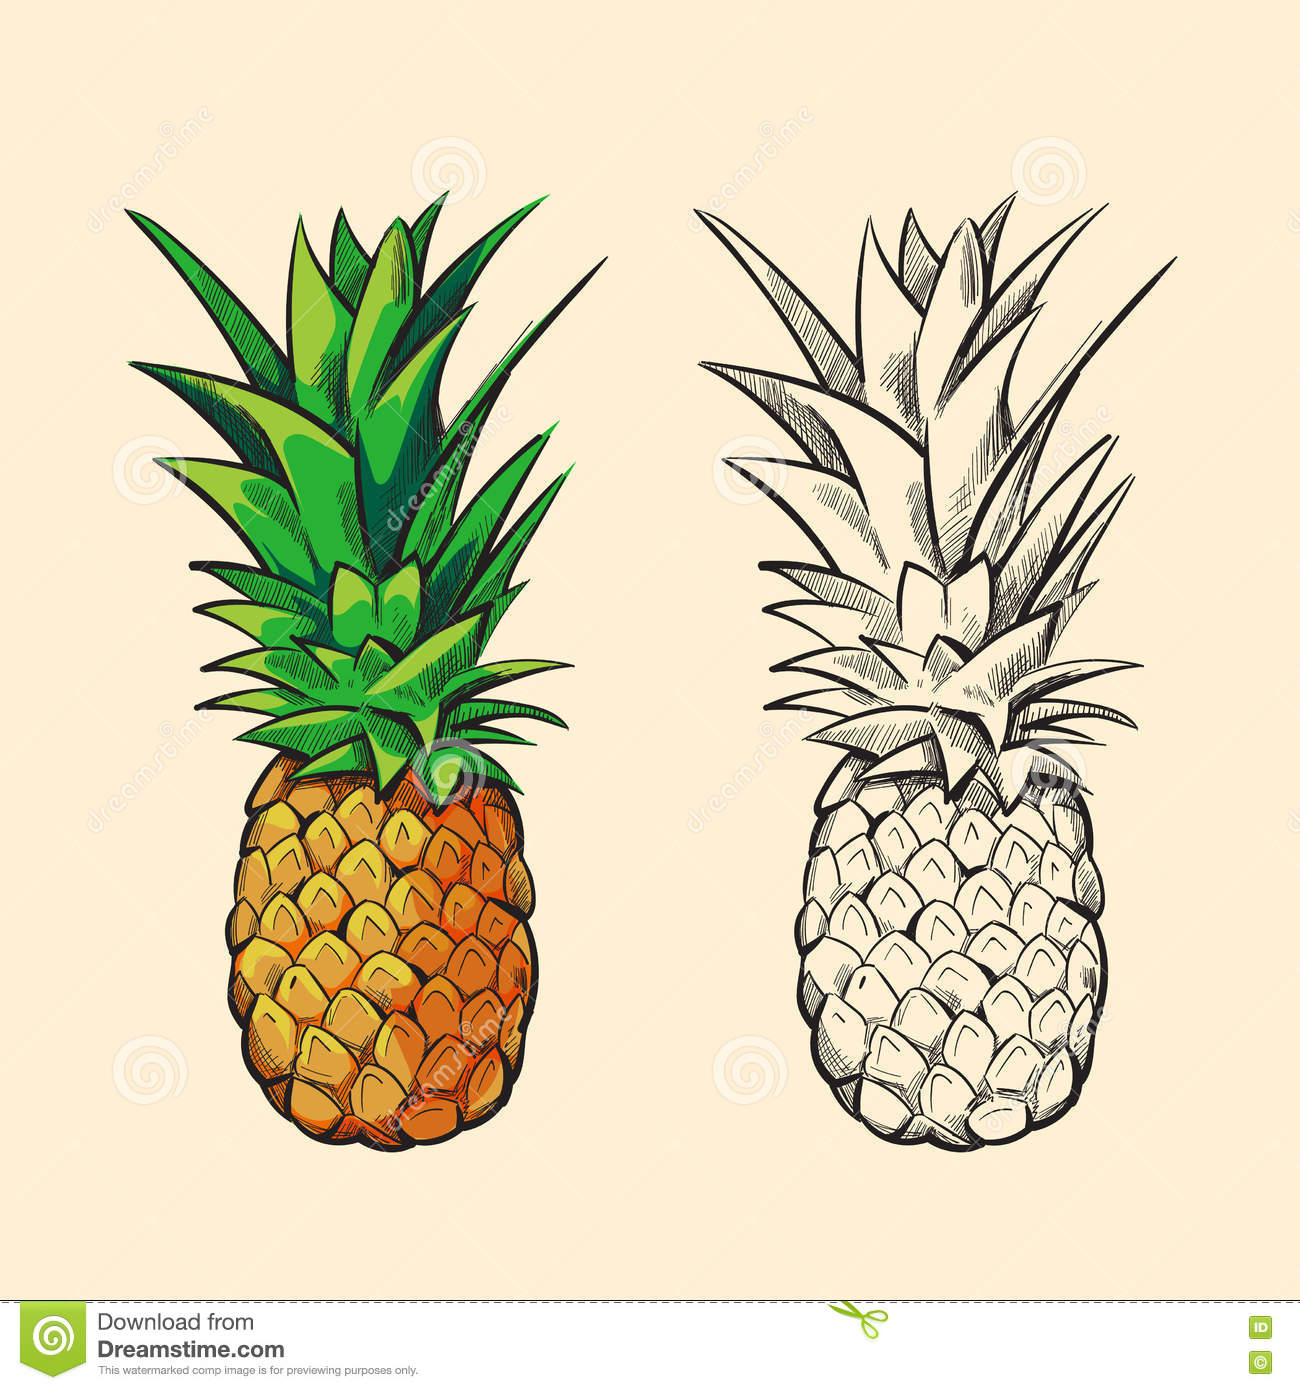 Uncategorized Pineapple Picture To Color outline pineapple and color cartoon vector illustration stock royalty free download color